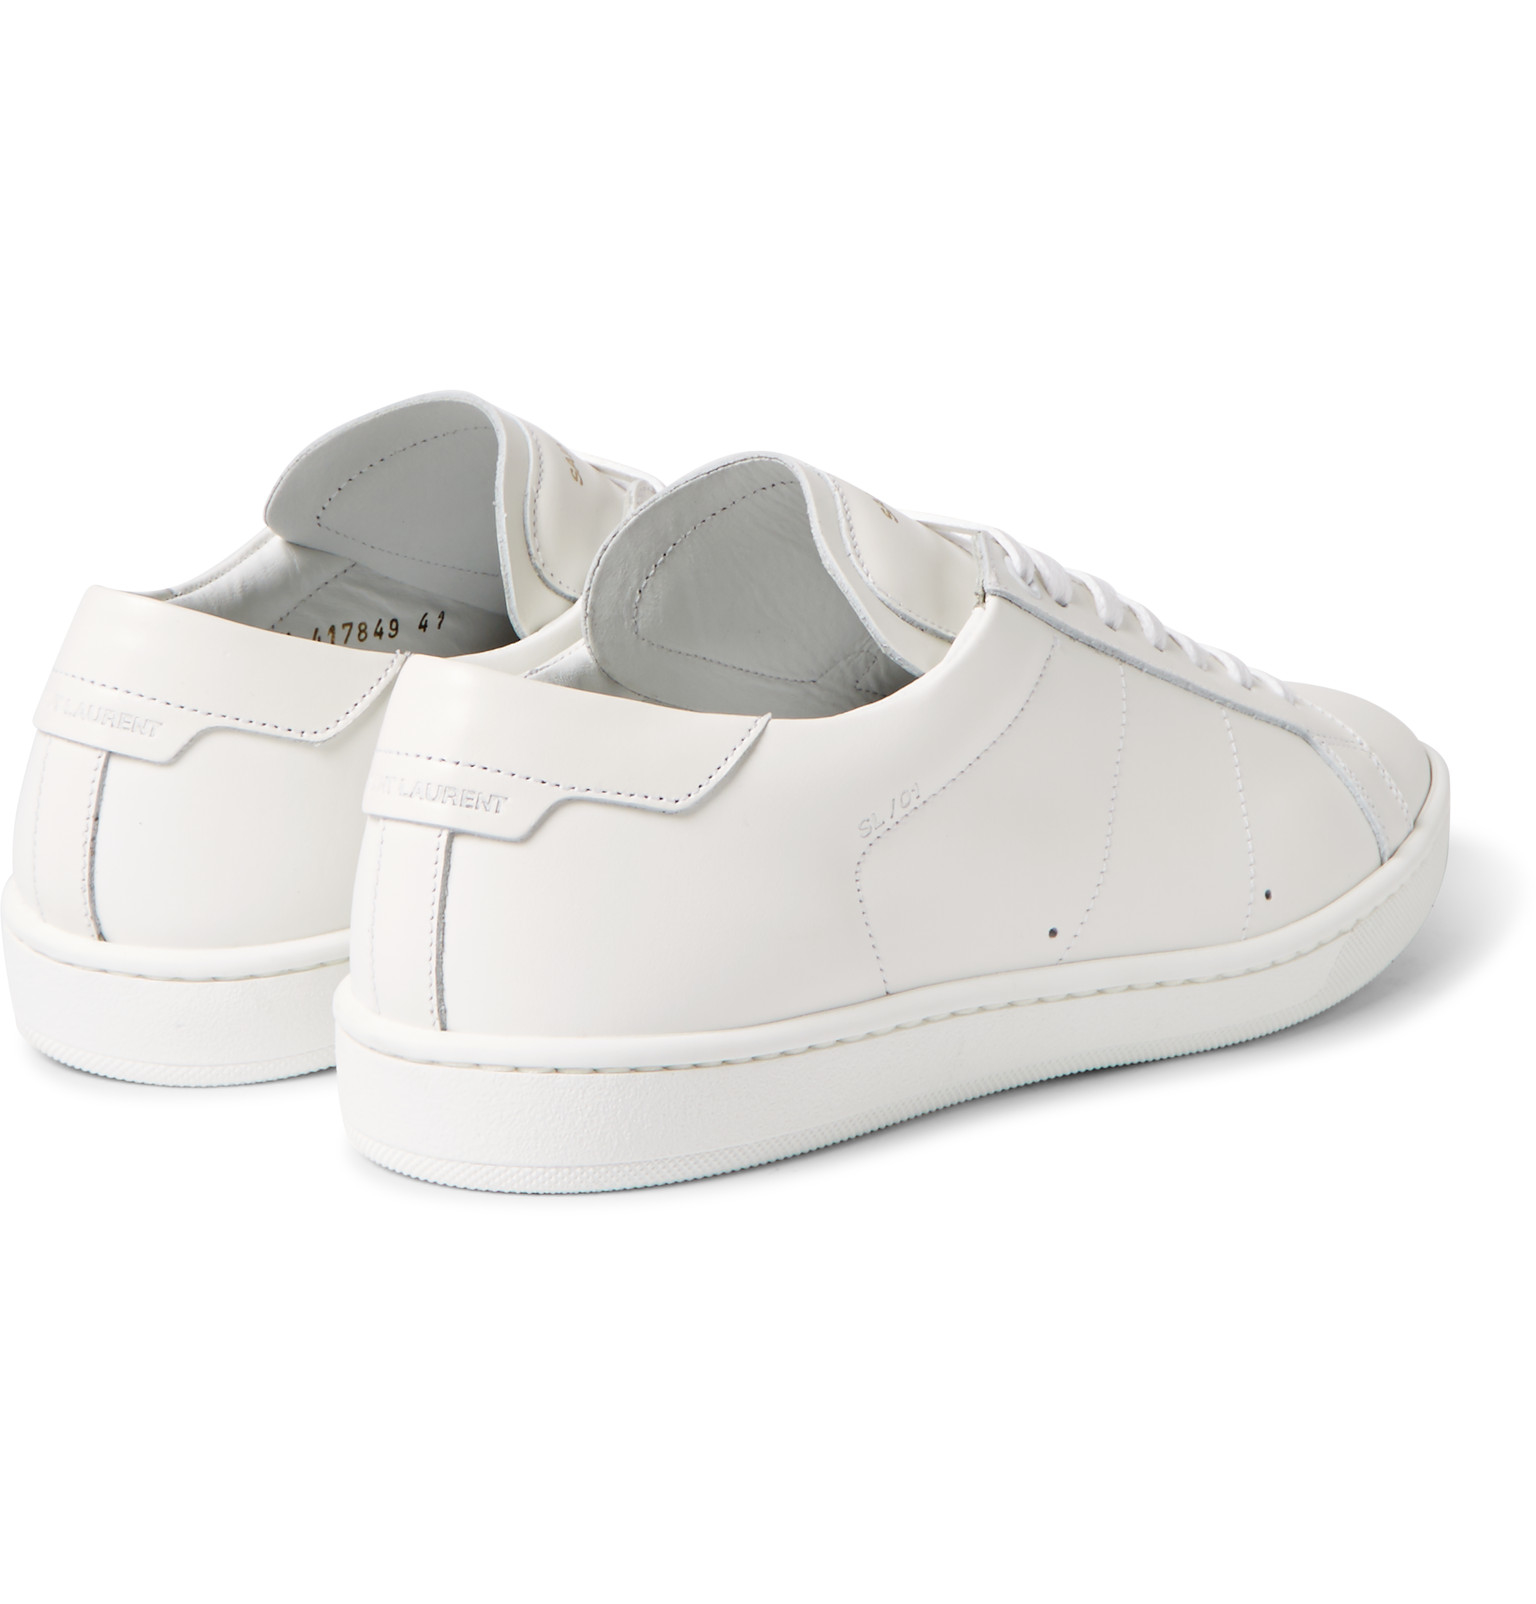 lyst saint laurent sl01 court classic leather sneakers in white for men. Black Bedroom Furniture Sets. Home Design Ideas